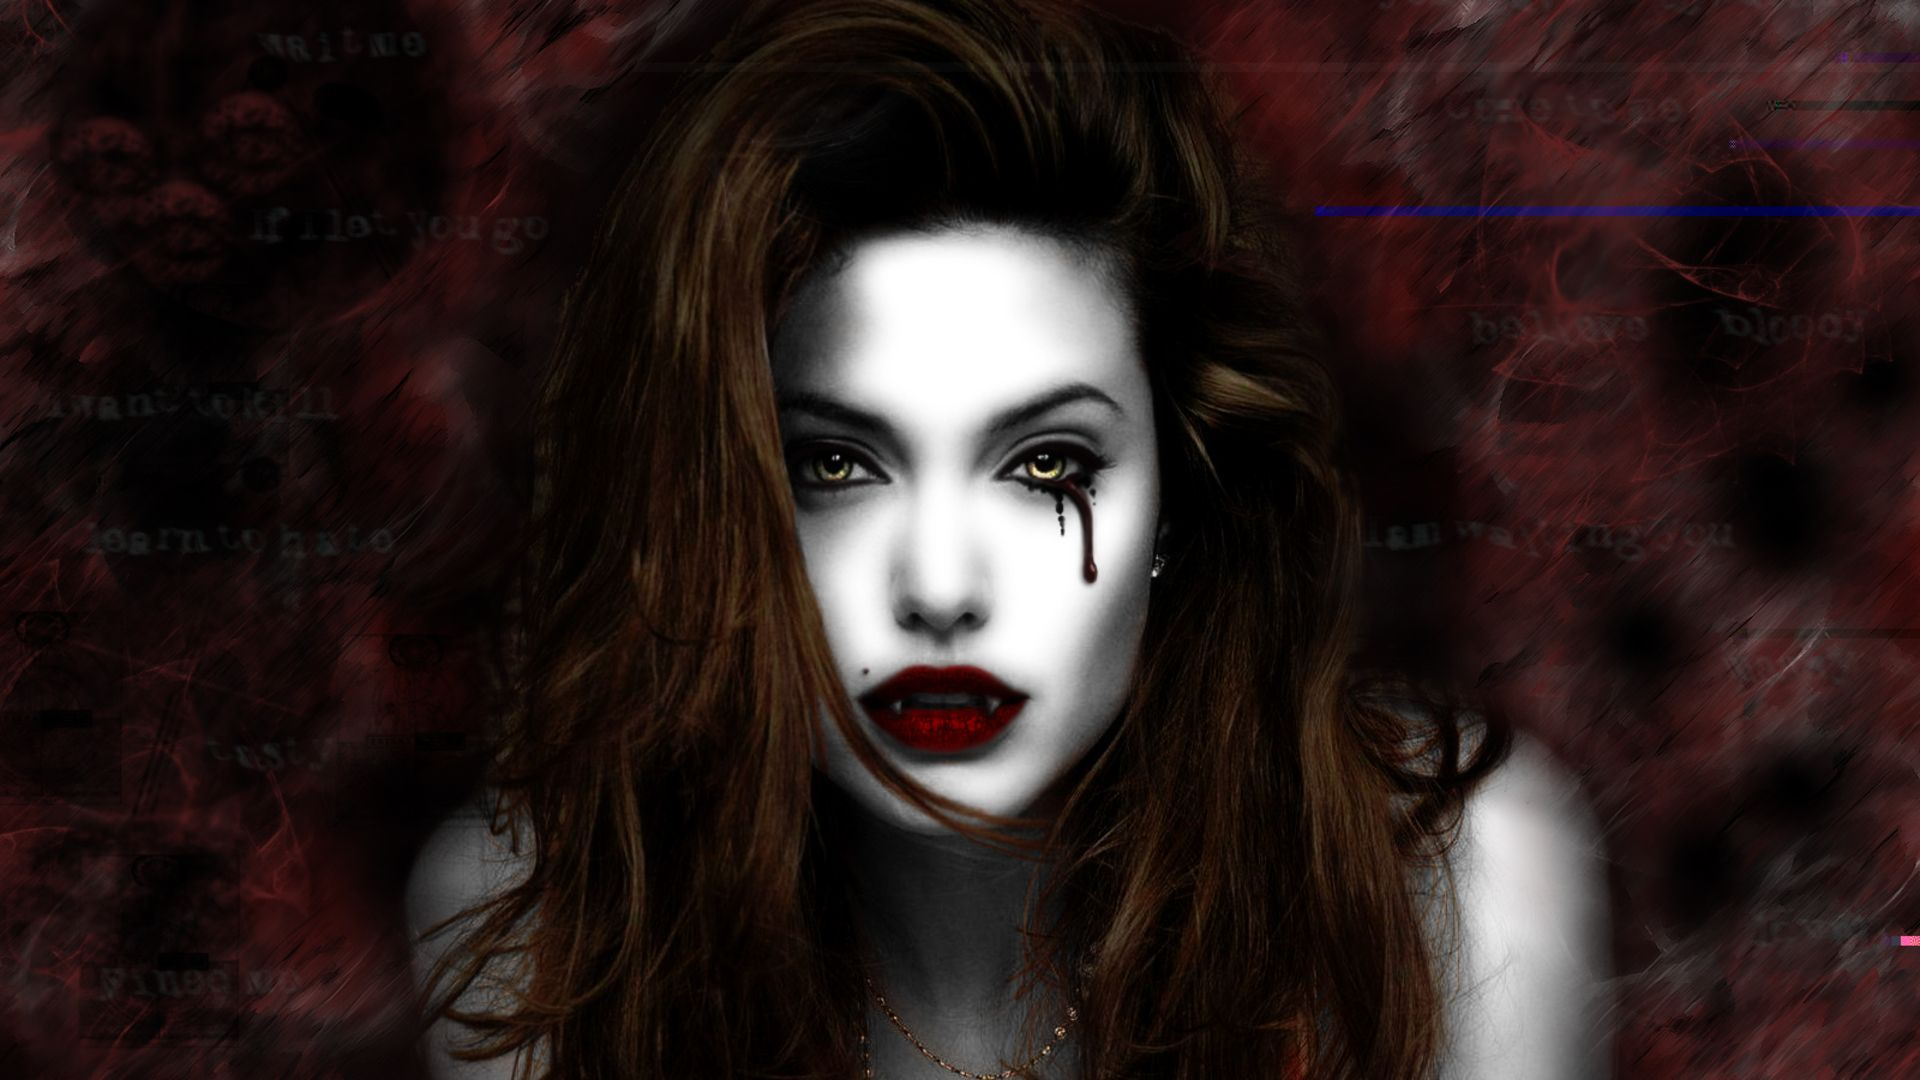 197 Vampire HD Wallpapers | Backgrounds - Wallpaper Abyss